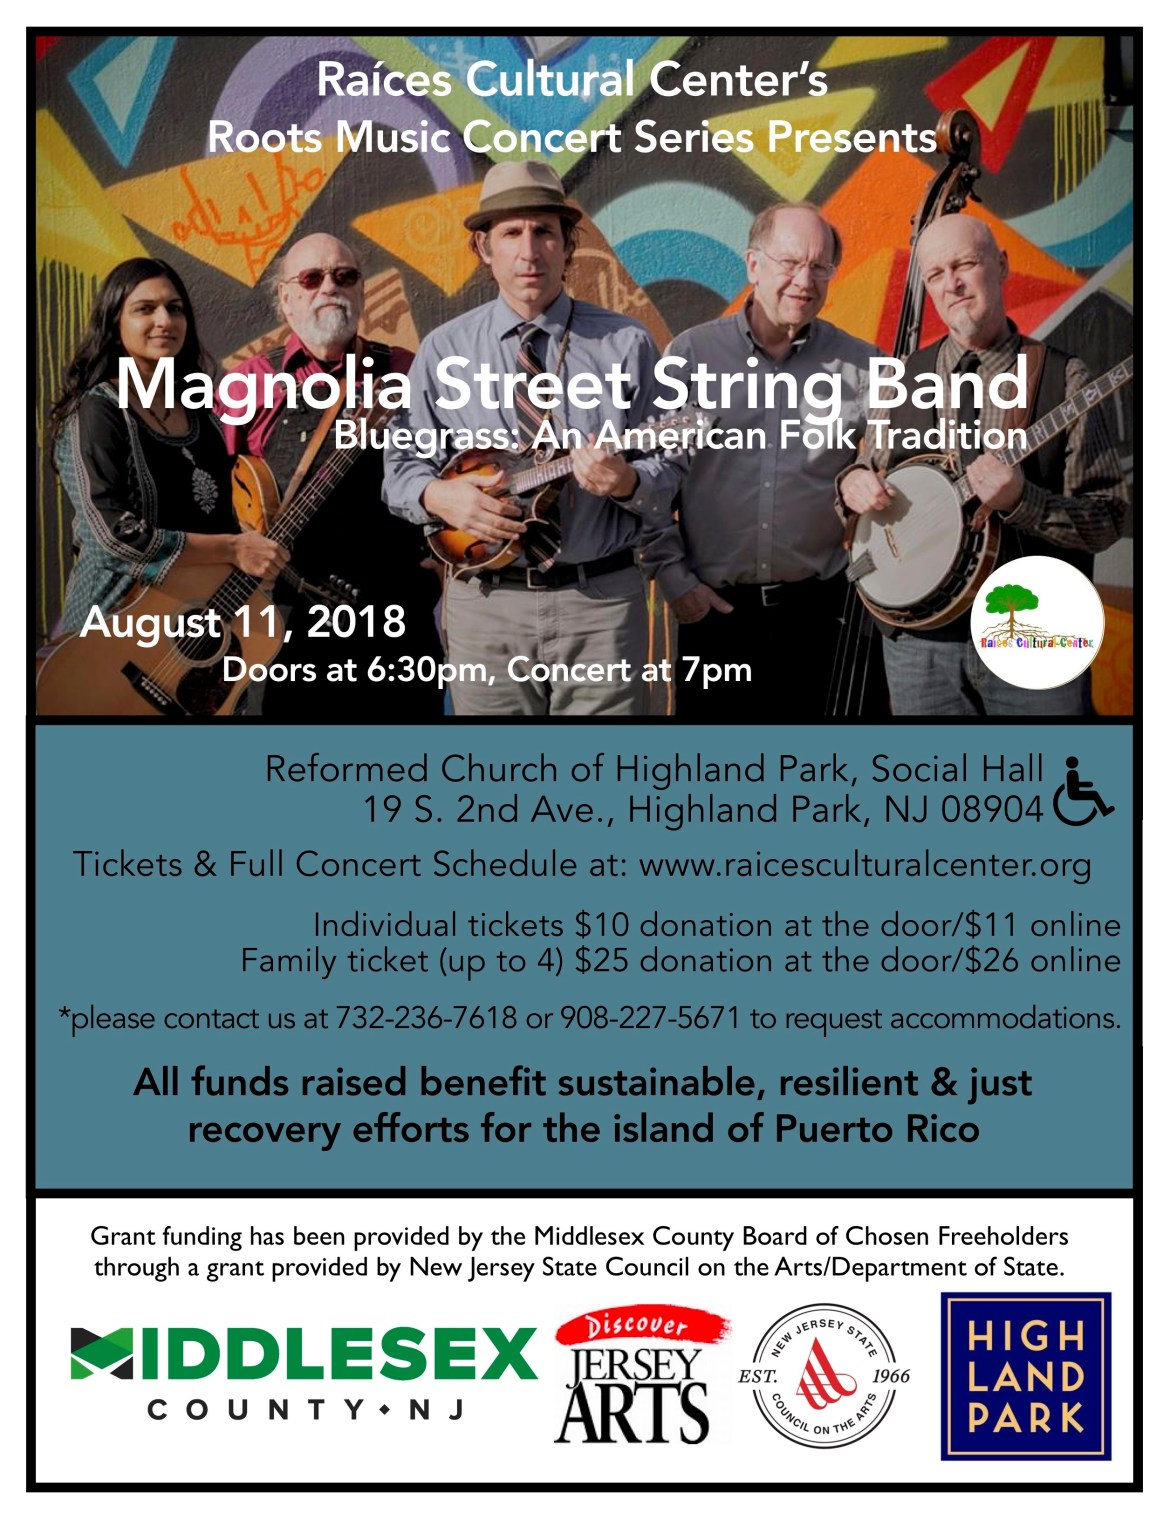 flyer for the next concert in the Raíces Roots Music Concert Series presenting Magnolia Street August 11, 7pm at the Reformed Church of Highland Park.